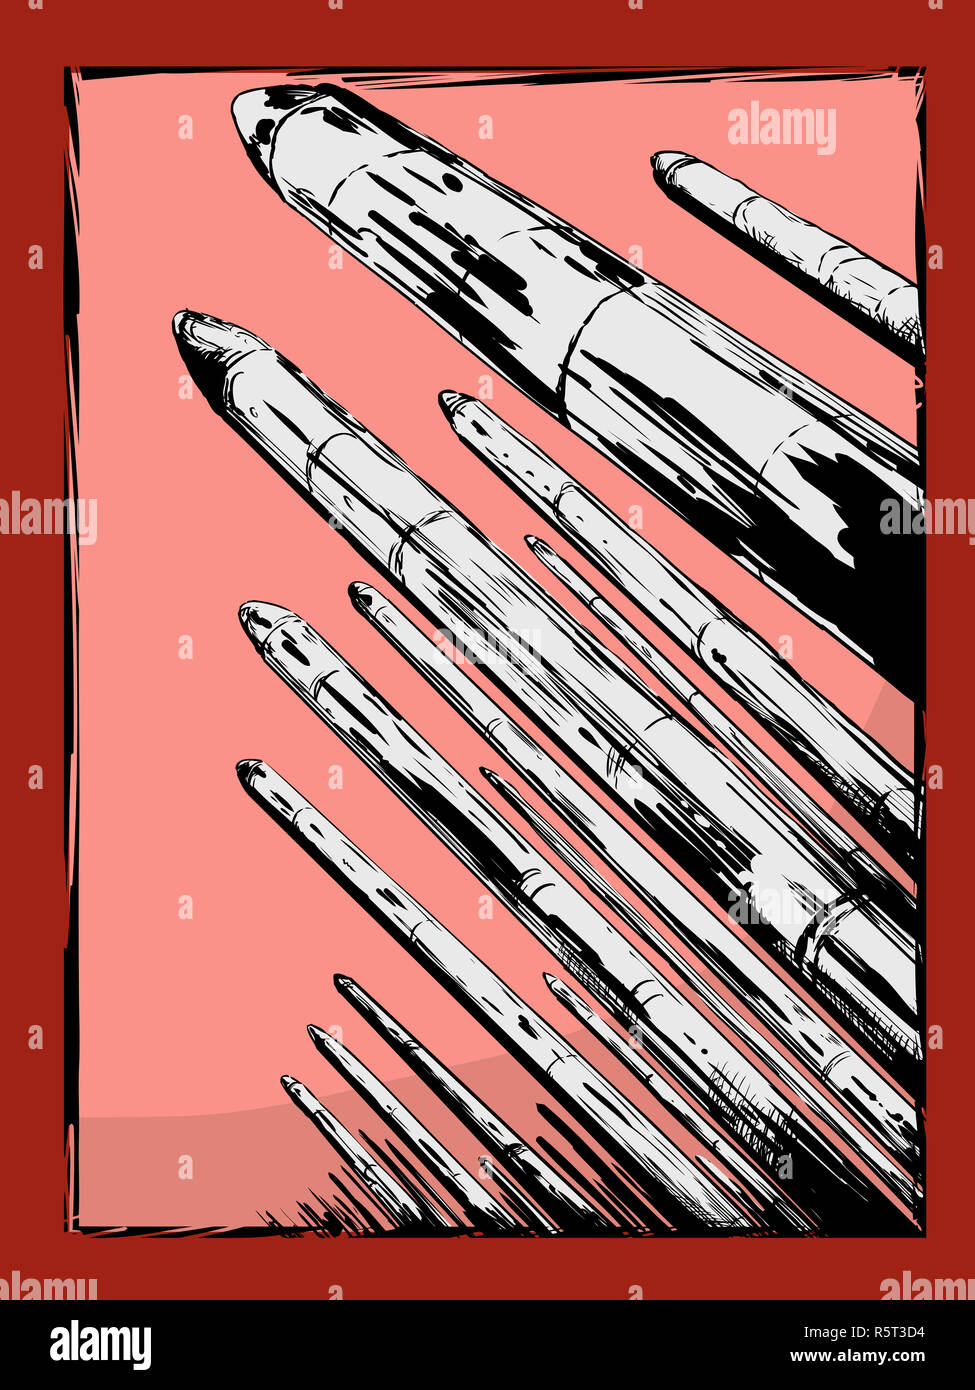 Nuclear Missiles Pointing Upward - Stock Image